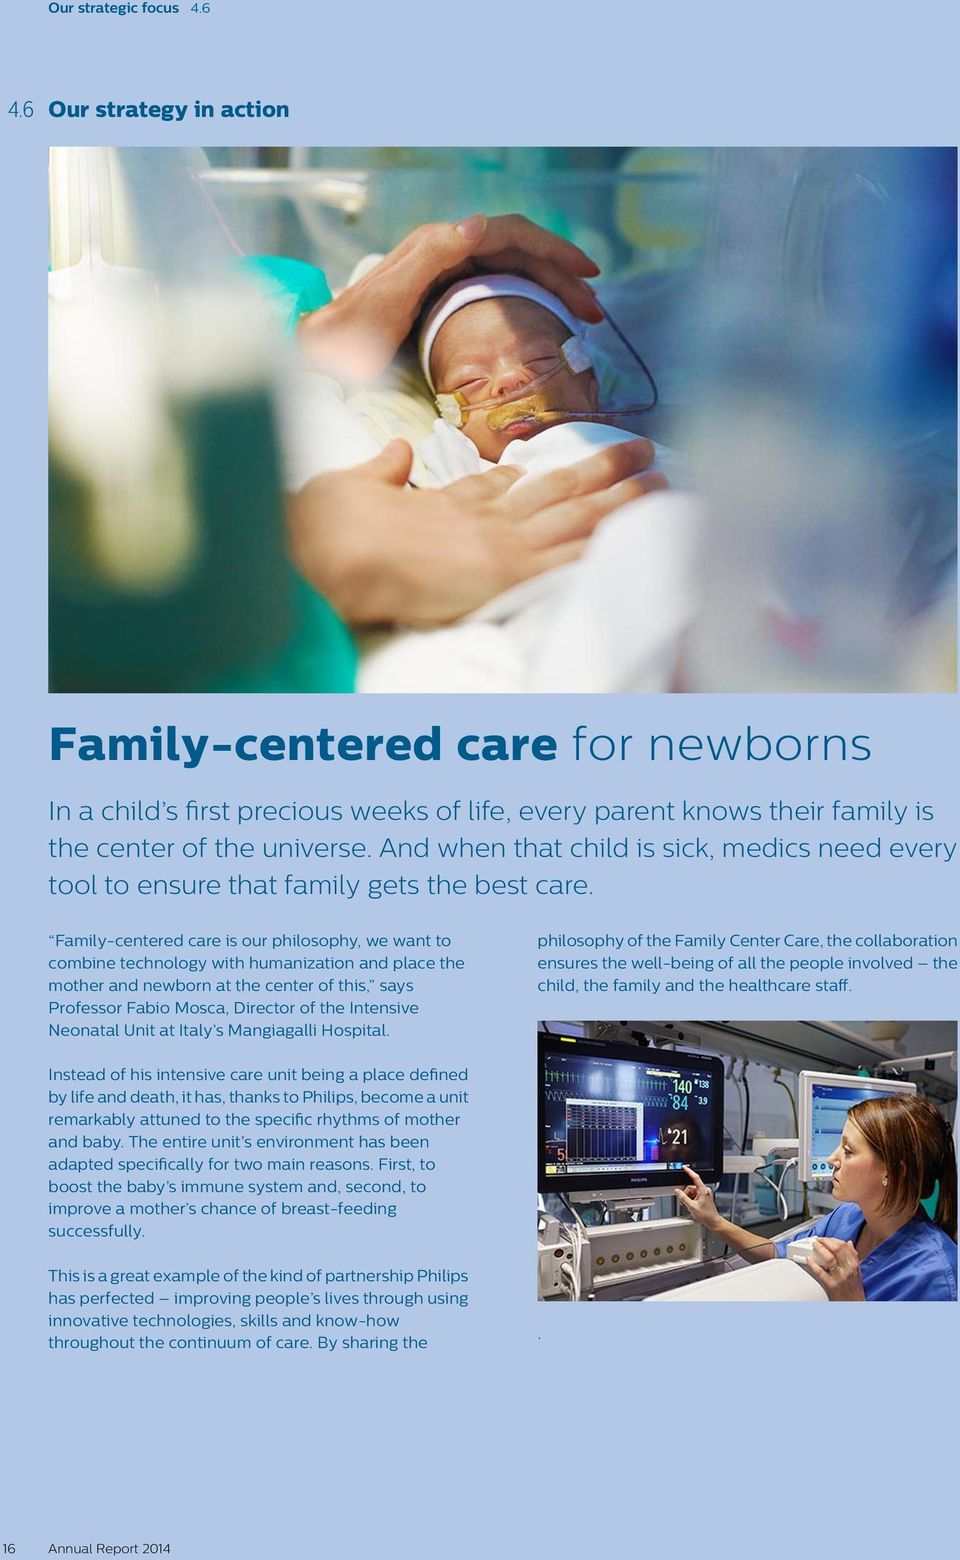 Family-centered care is our philosophy, we want to combine technology with humanization and place the mother and newborn at the center of this, says Professor Fabio Mosca, Director of the Intensive